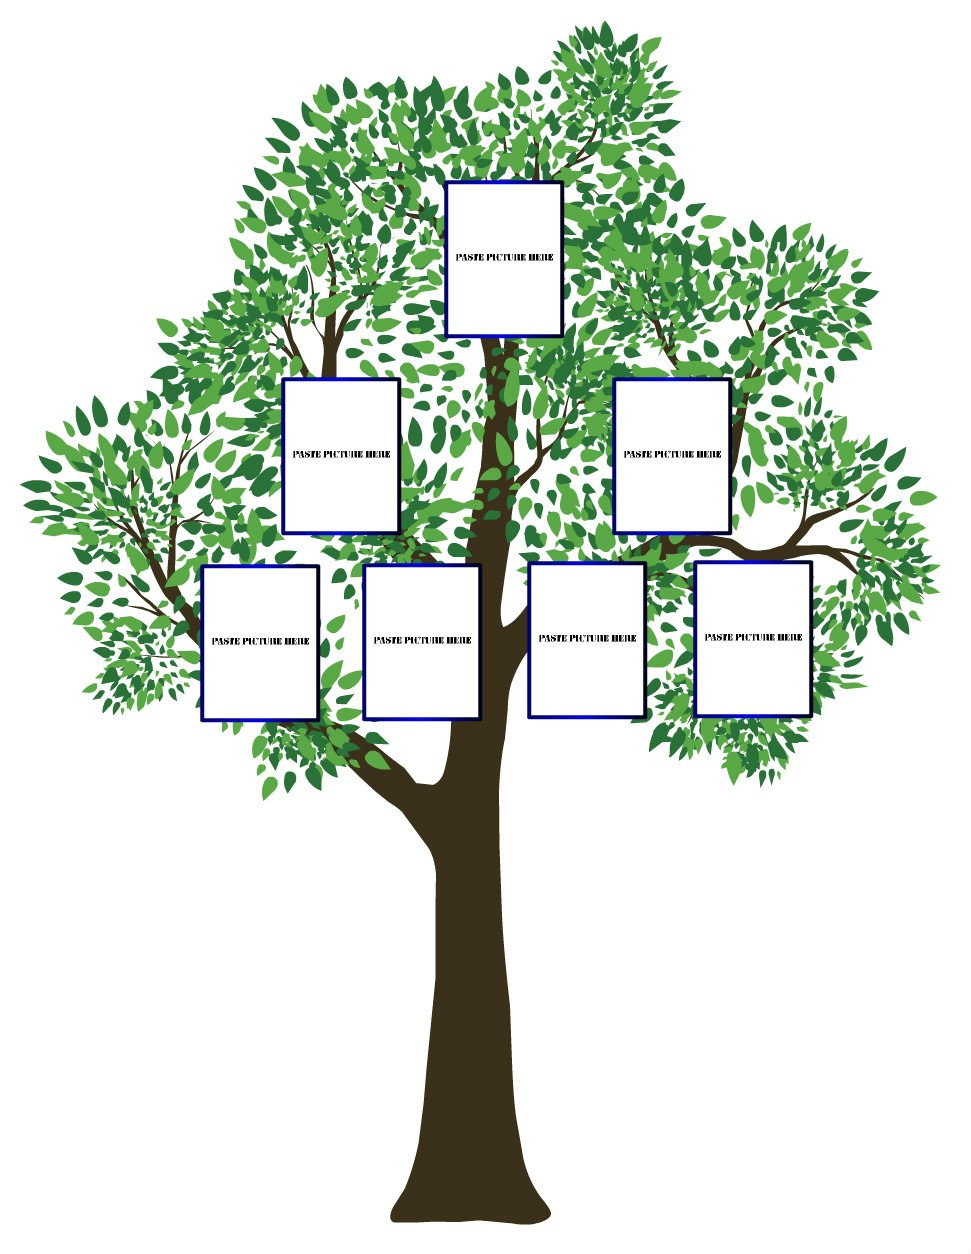 Three Generation Family Tree Templates Images  Clip Art Library Inside Blank Family Tree Template 3 Generations